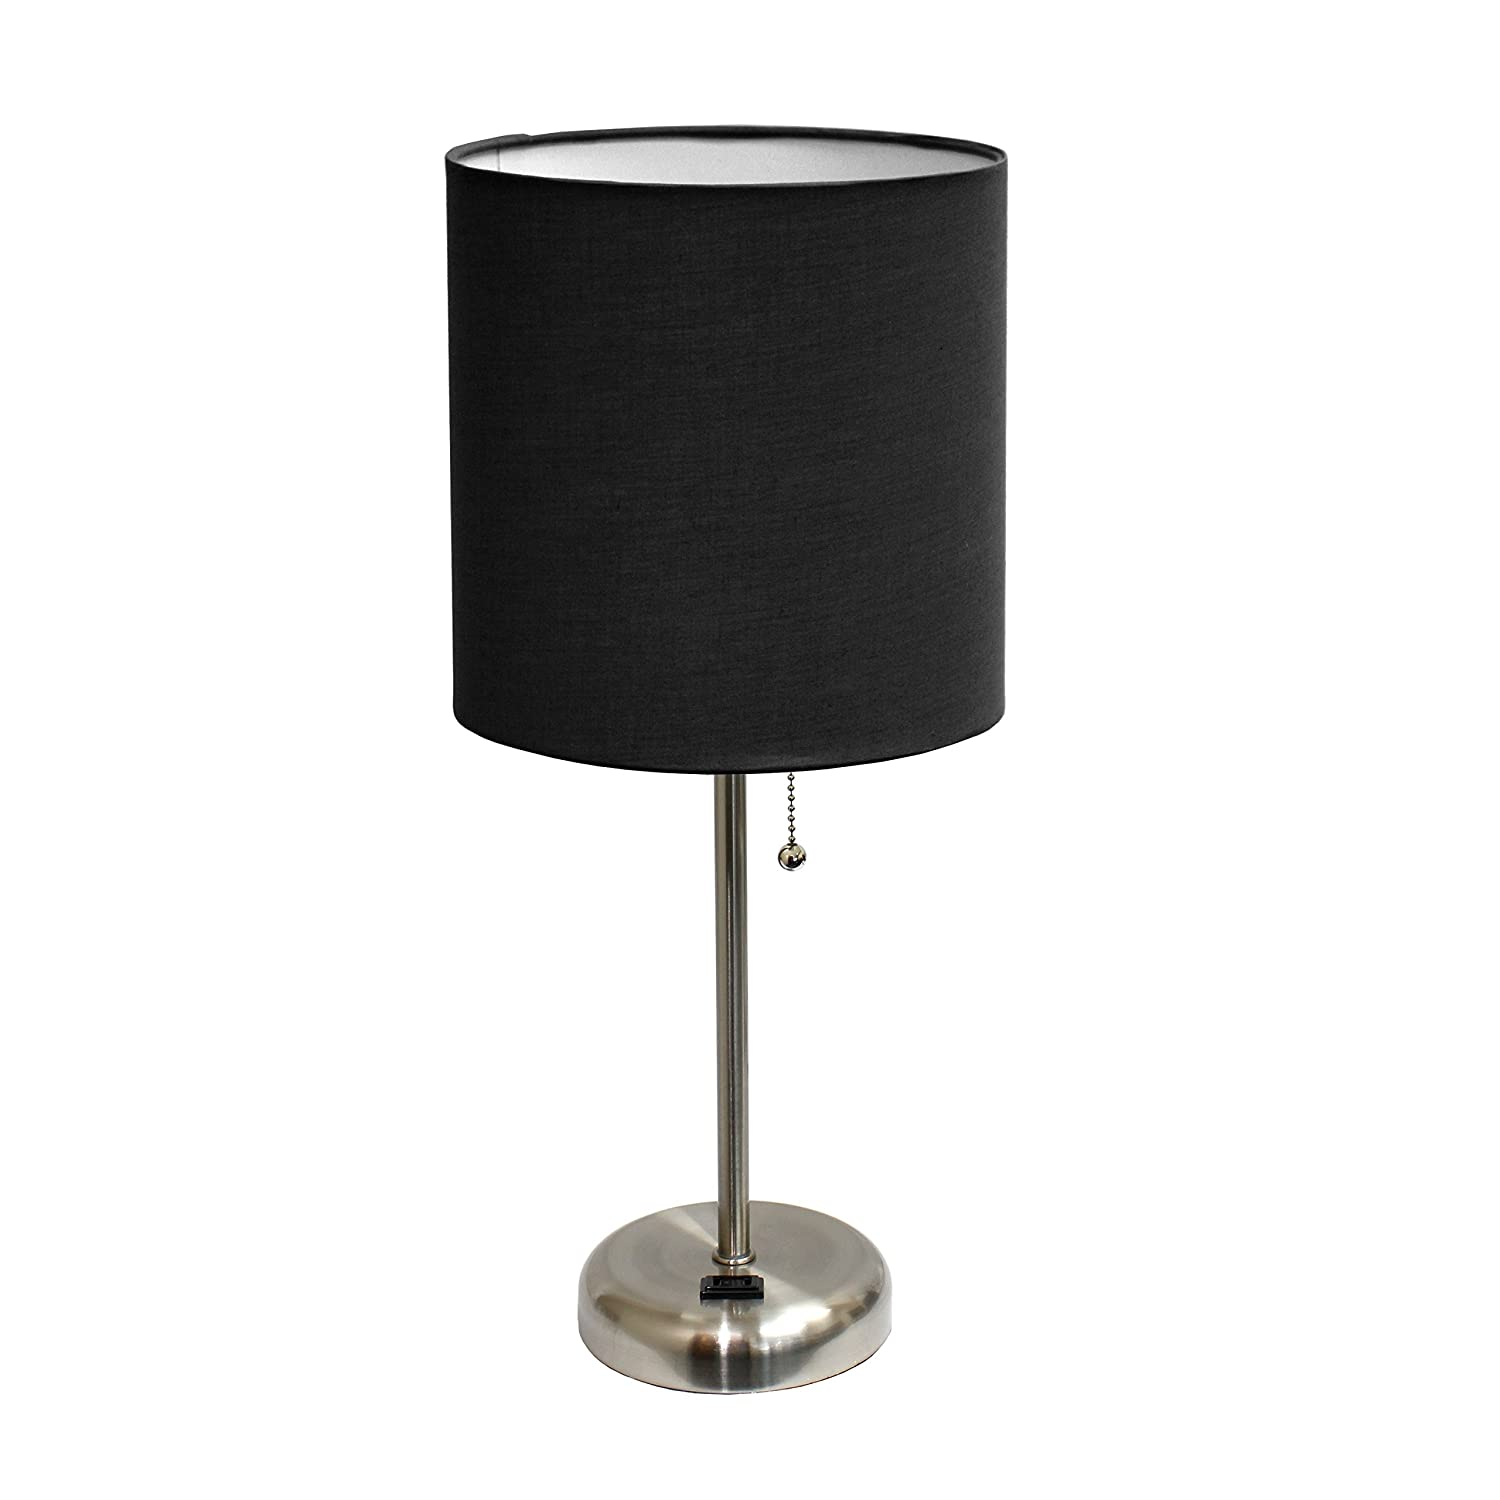 Limelights LT2024-BLK Brushed Steel Lamp with Charging Outlet and Fabric Shade